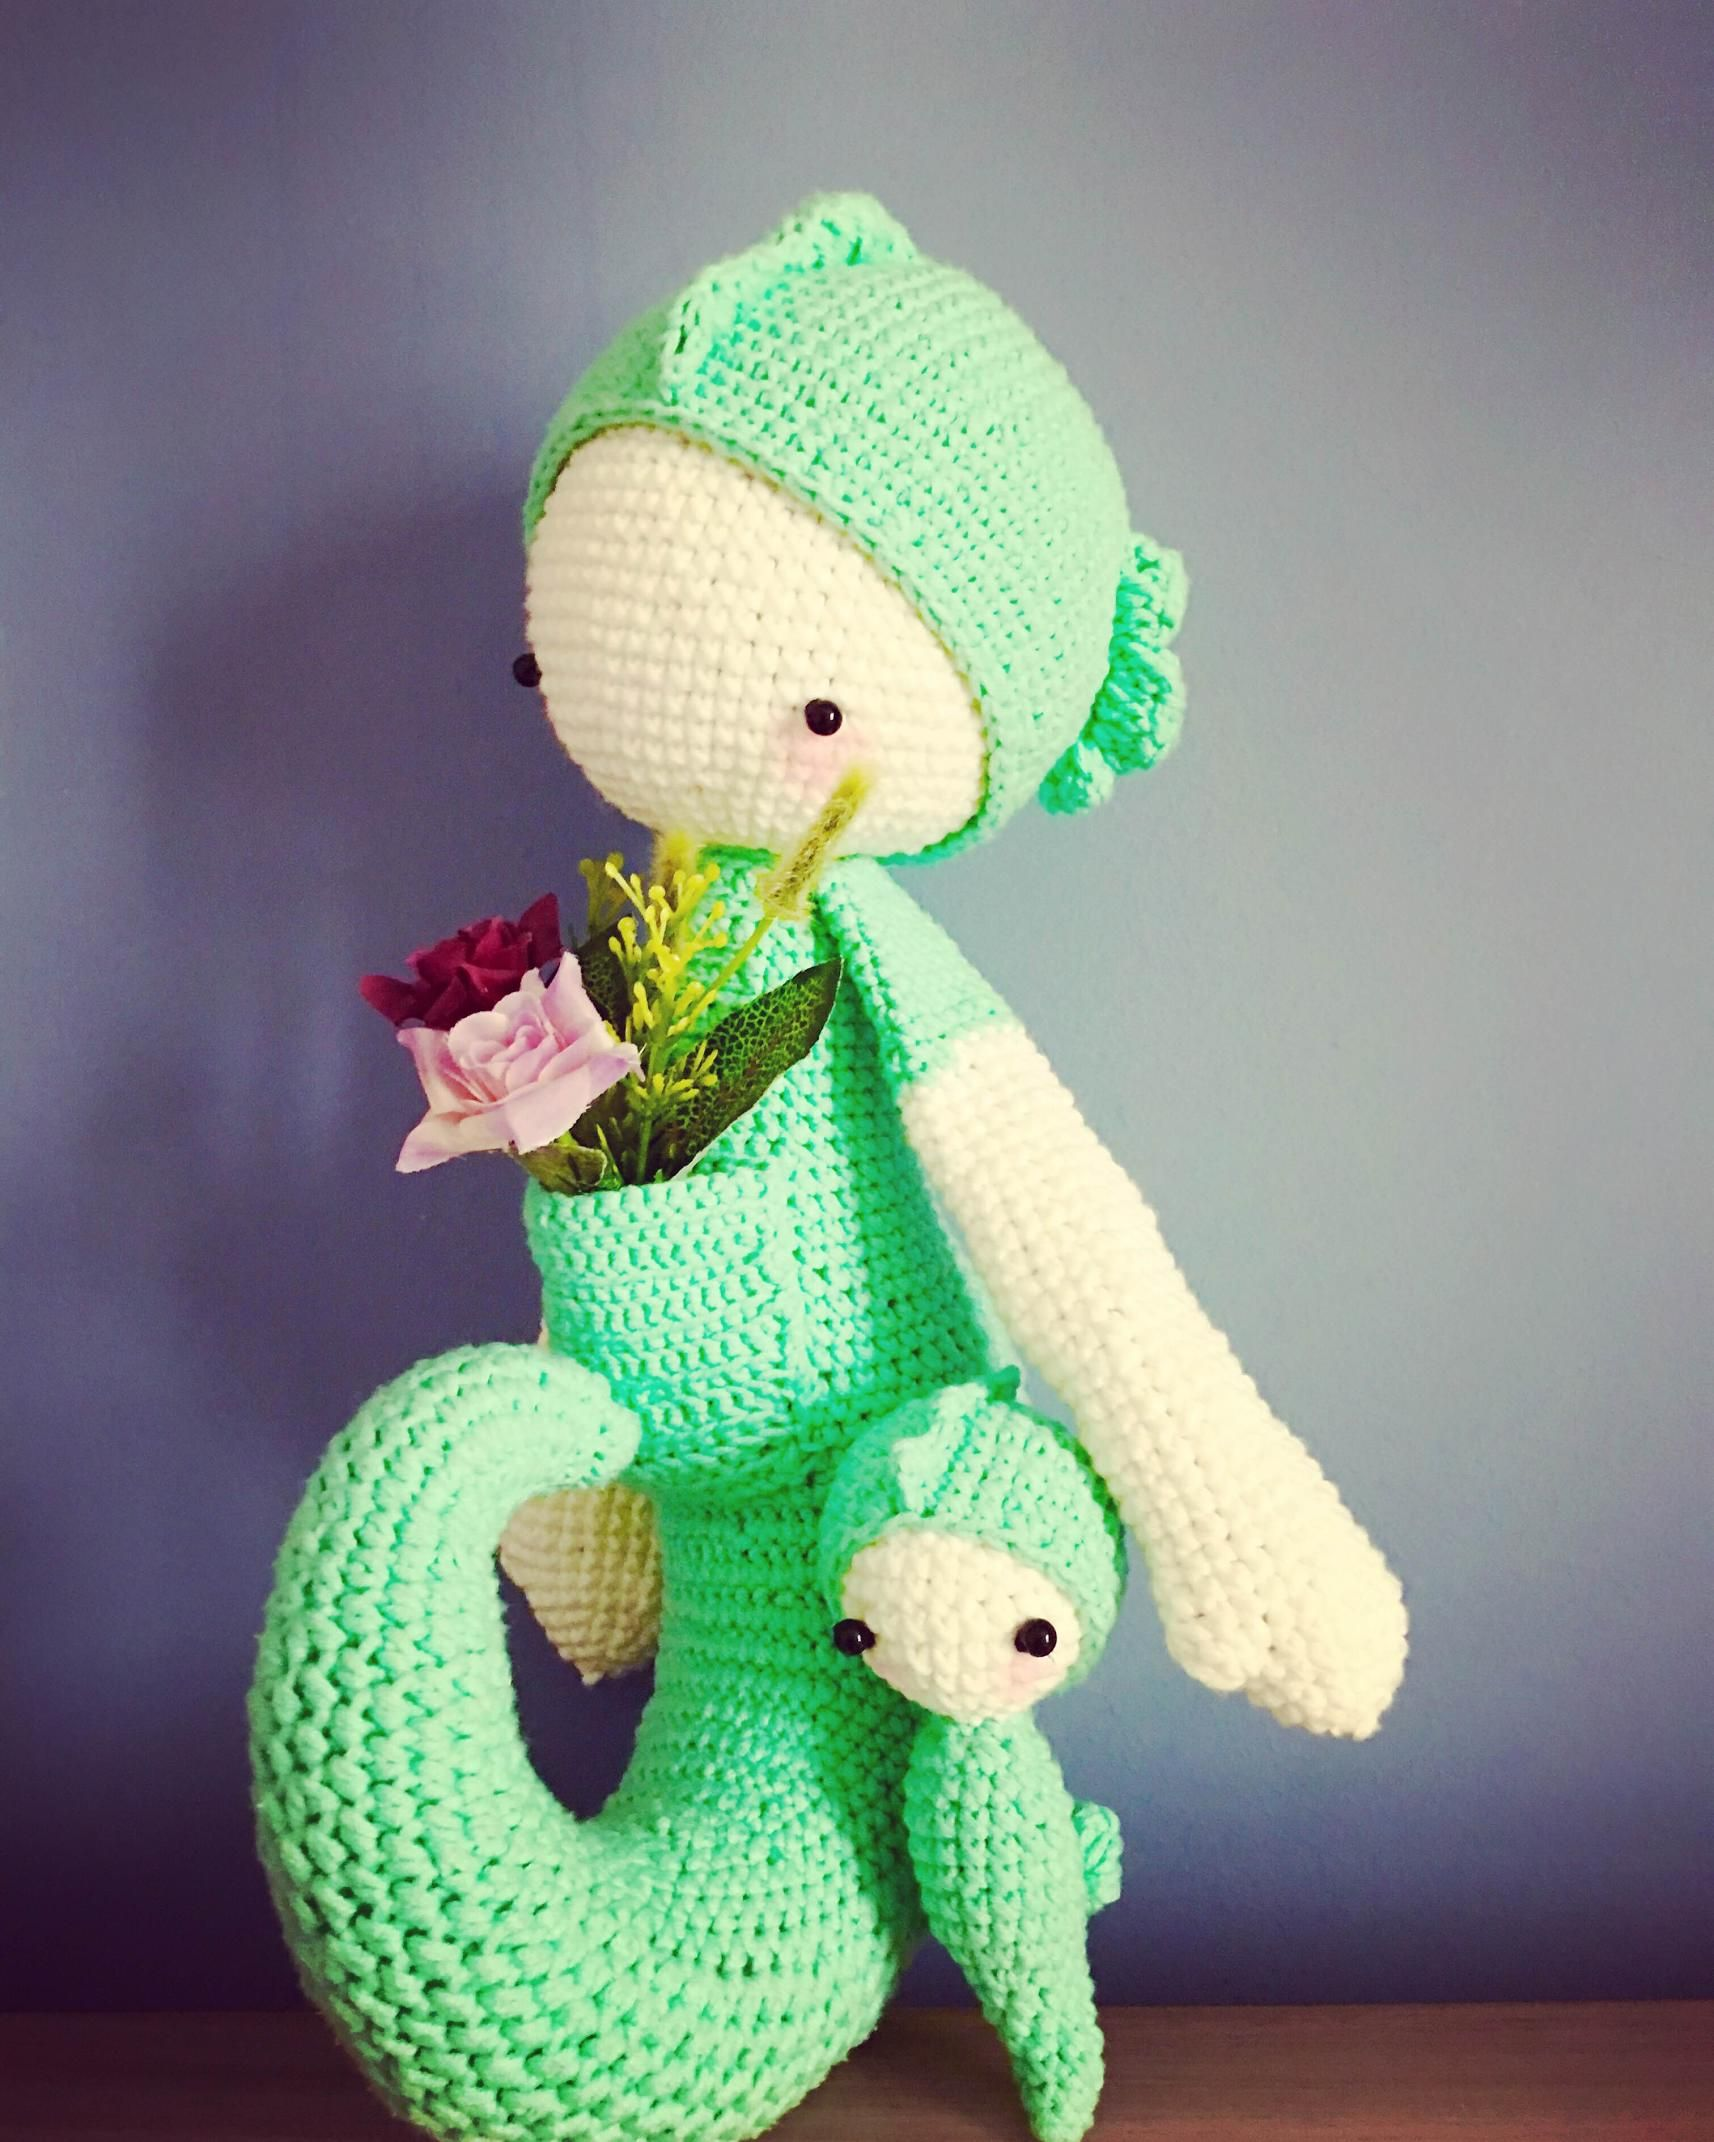 Seahorse sepp made by zoa z crochet pattern by lalylala seahorse sepp made by zoa z crochet pattern by lalylala bankloansurffo Image collections